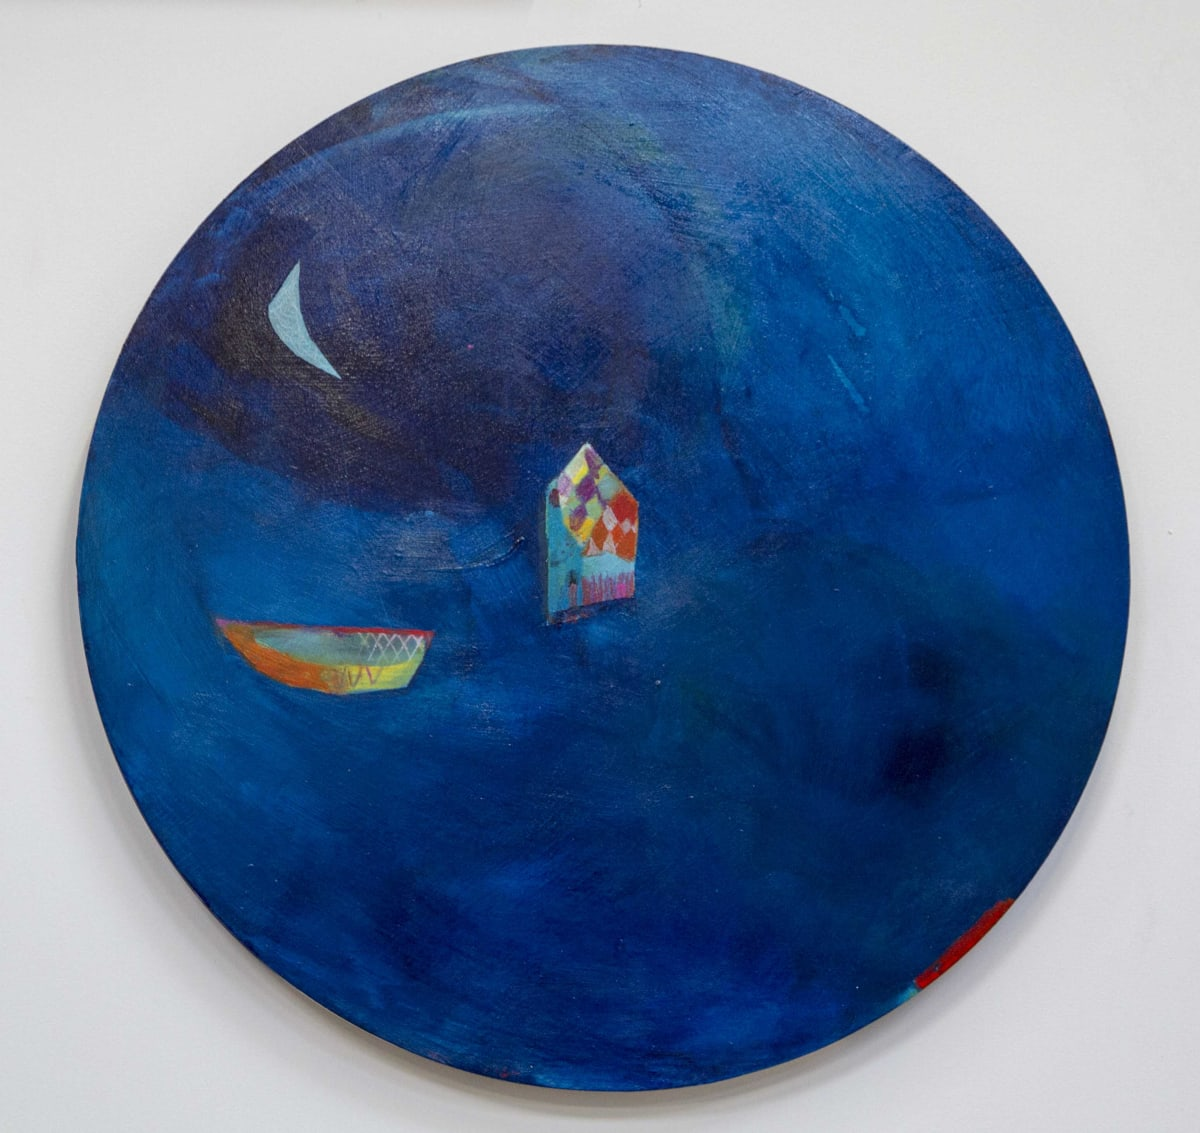 Kate Trafeli, In The Night (Dream Circle), 2019